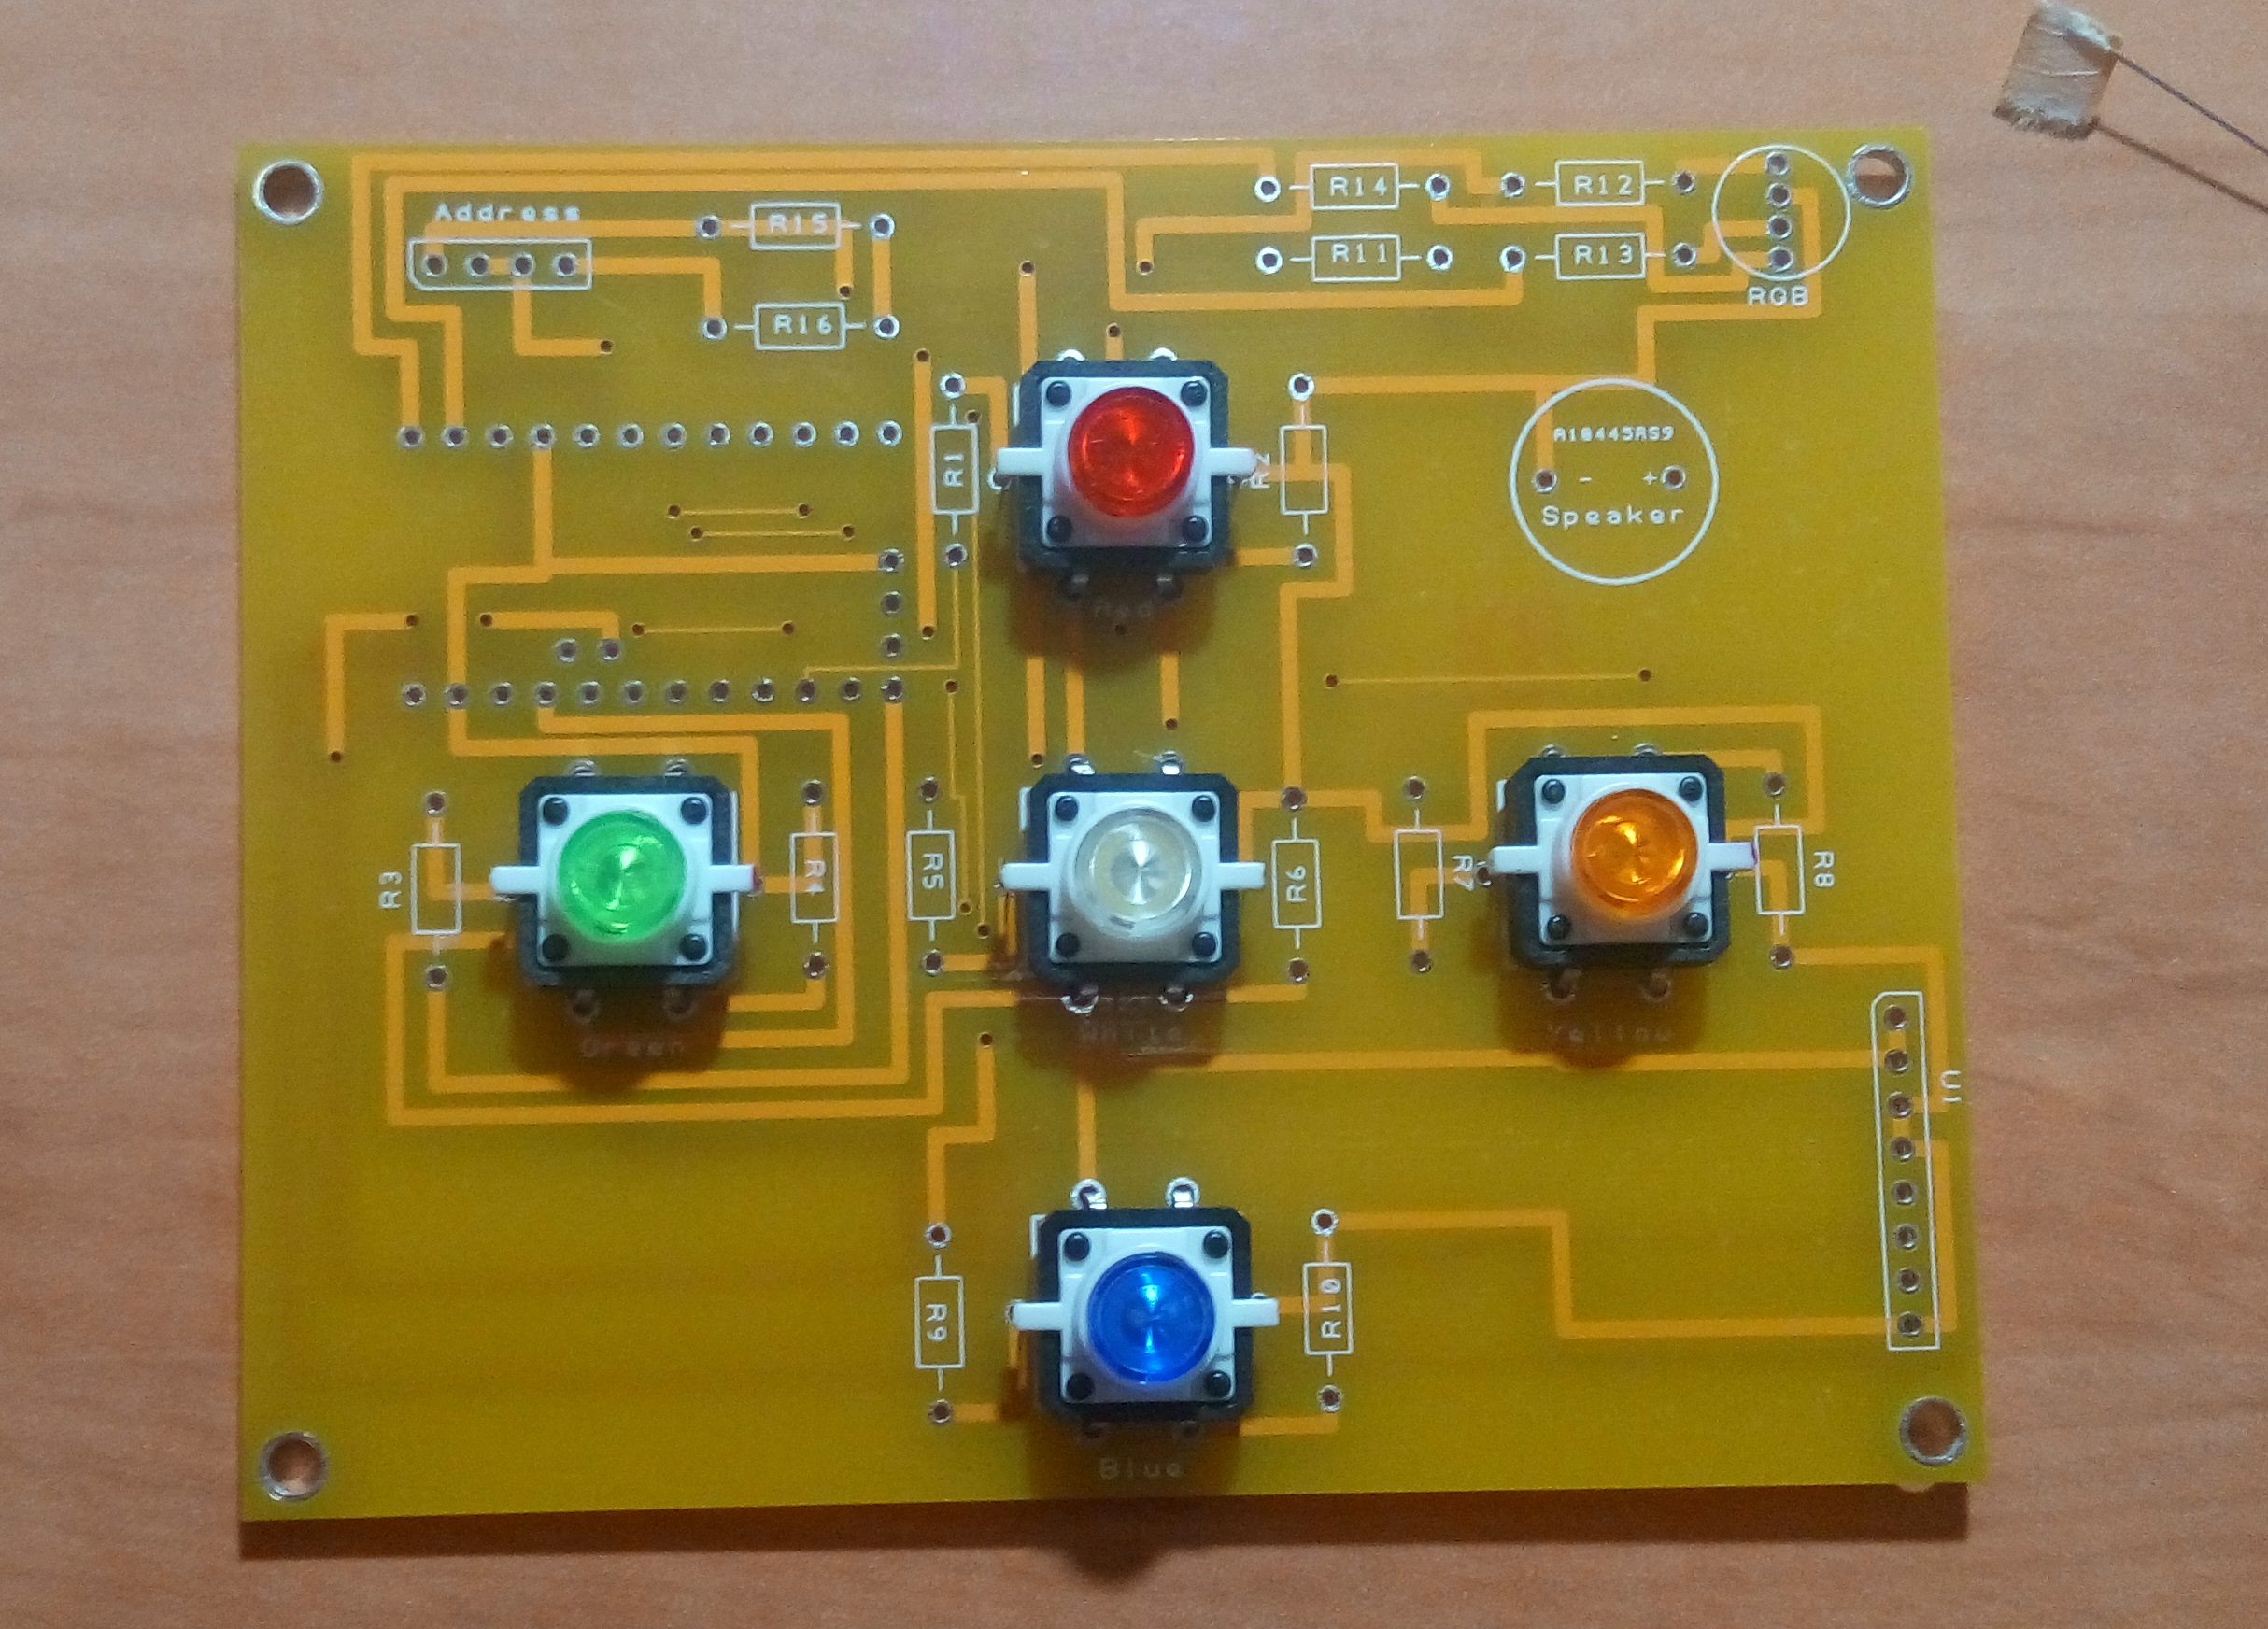 Step 2 - Add 5x Tactile 12x12 LED Button